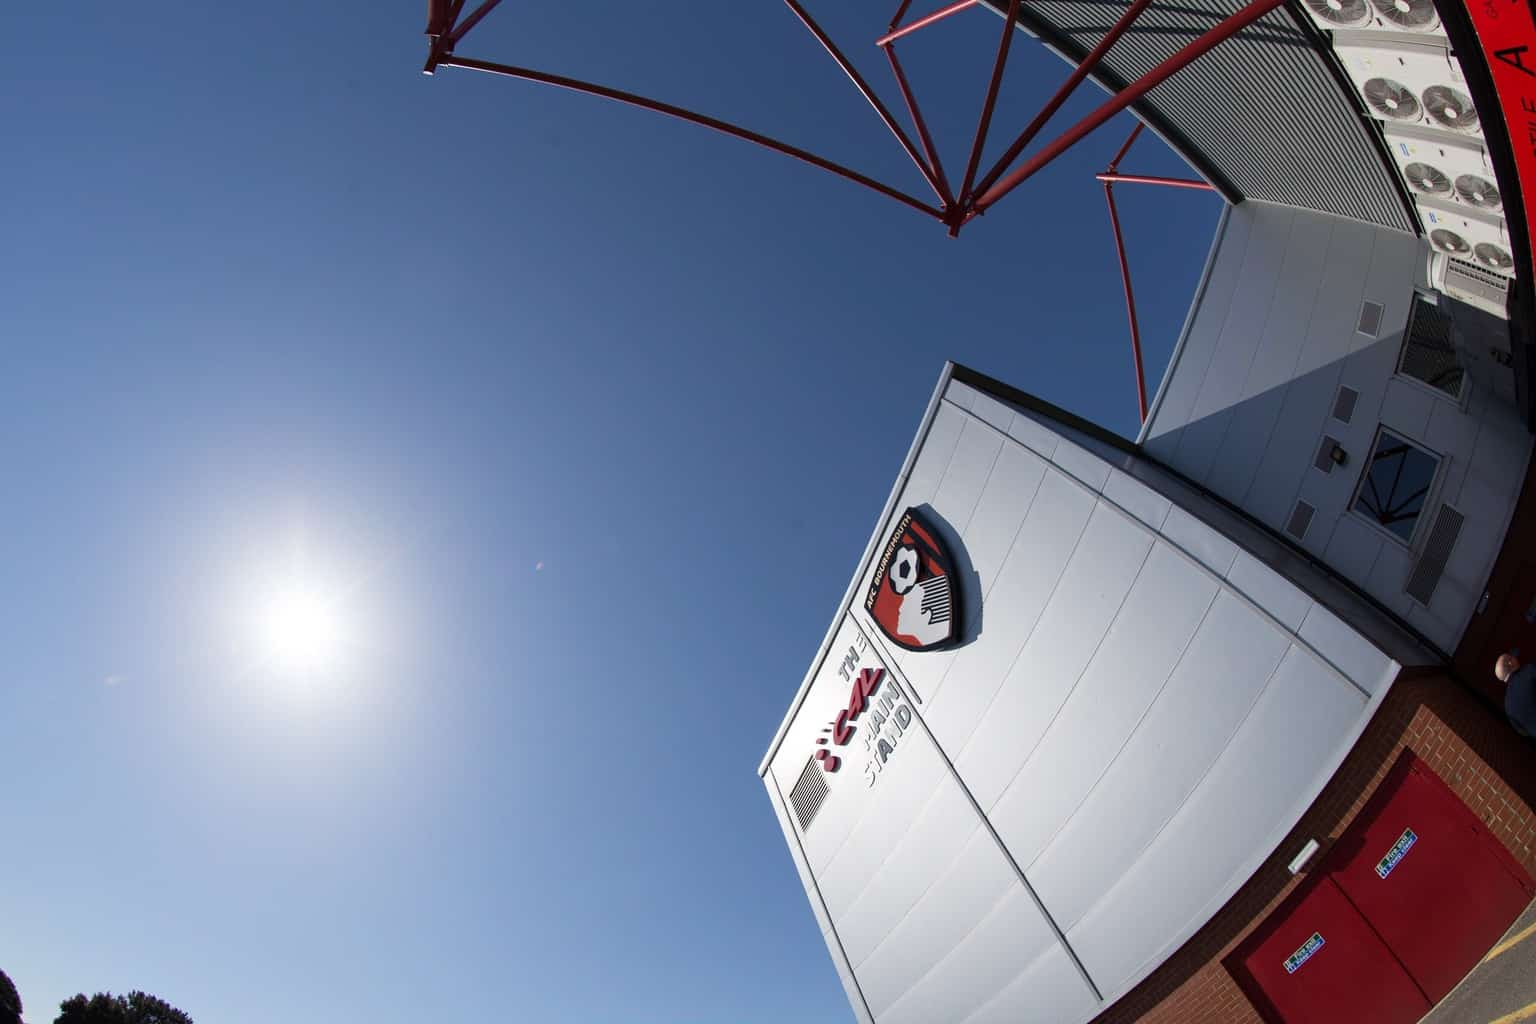 Picture of the Vitality Stadium, Bournemouth, Dorset